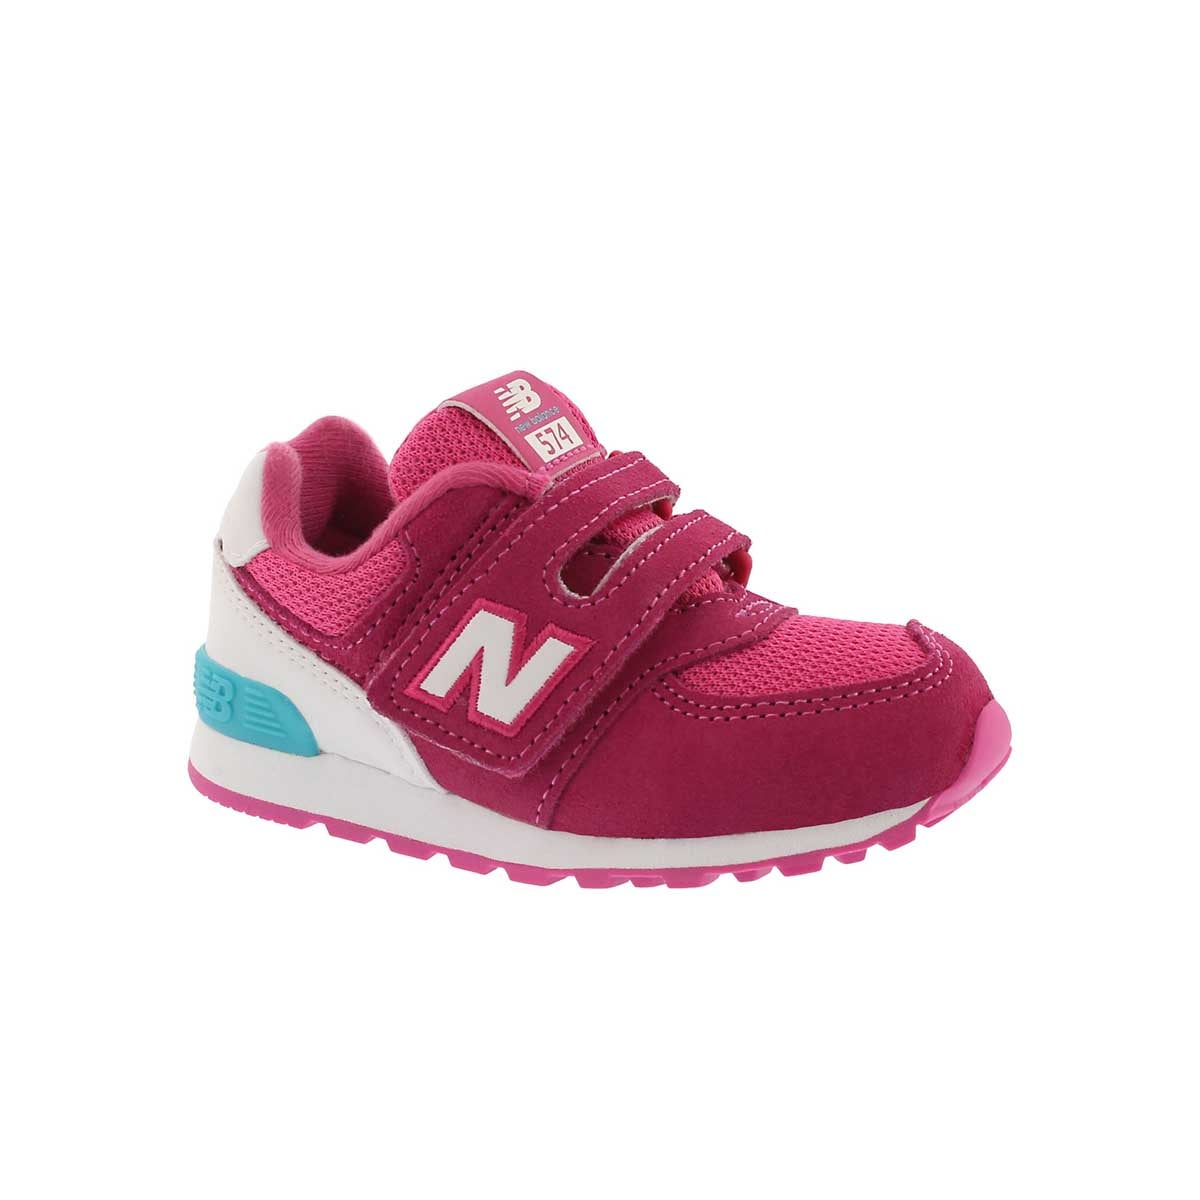 Infants' 574 pink/white sneakers